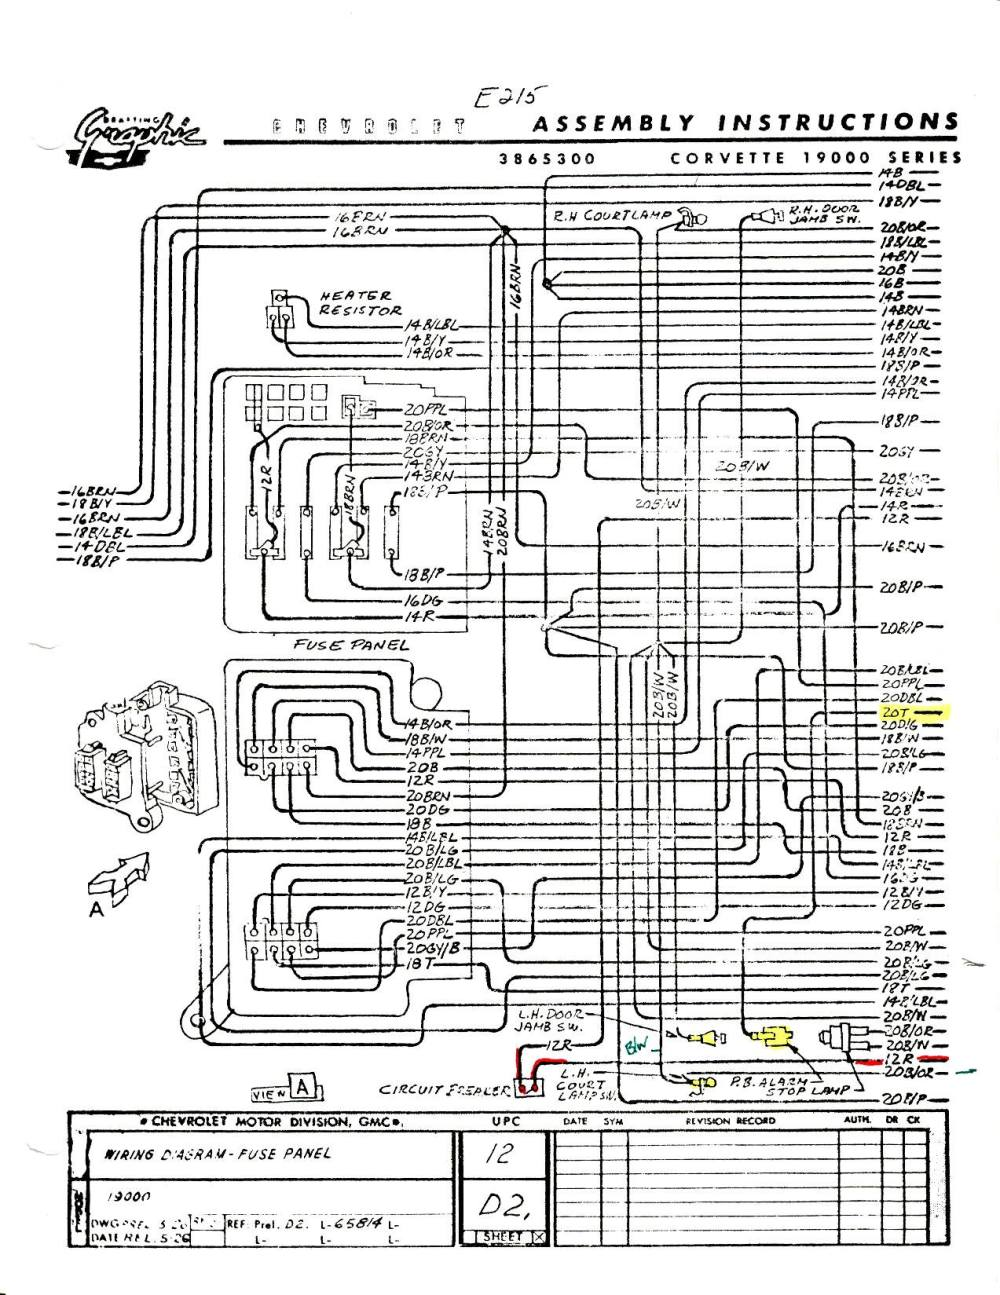 medium resolution of 1960 chevy ignition switch wiring diagram wiring library 1963 corvair wiring diagram 1963 chevrolet corvette dash wiring diagram